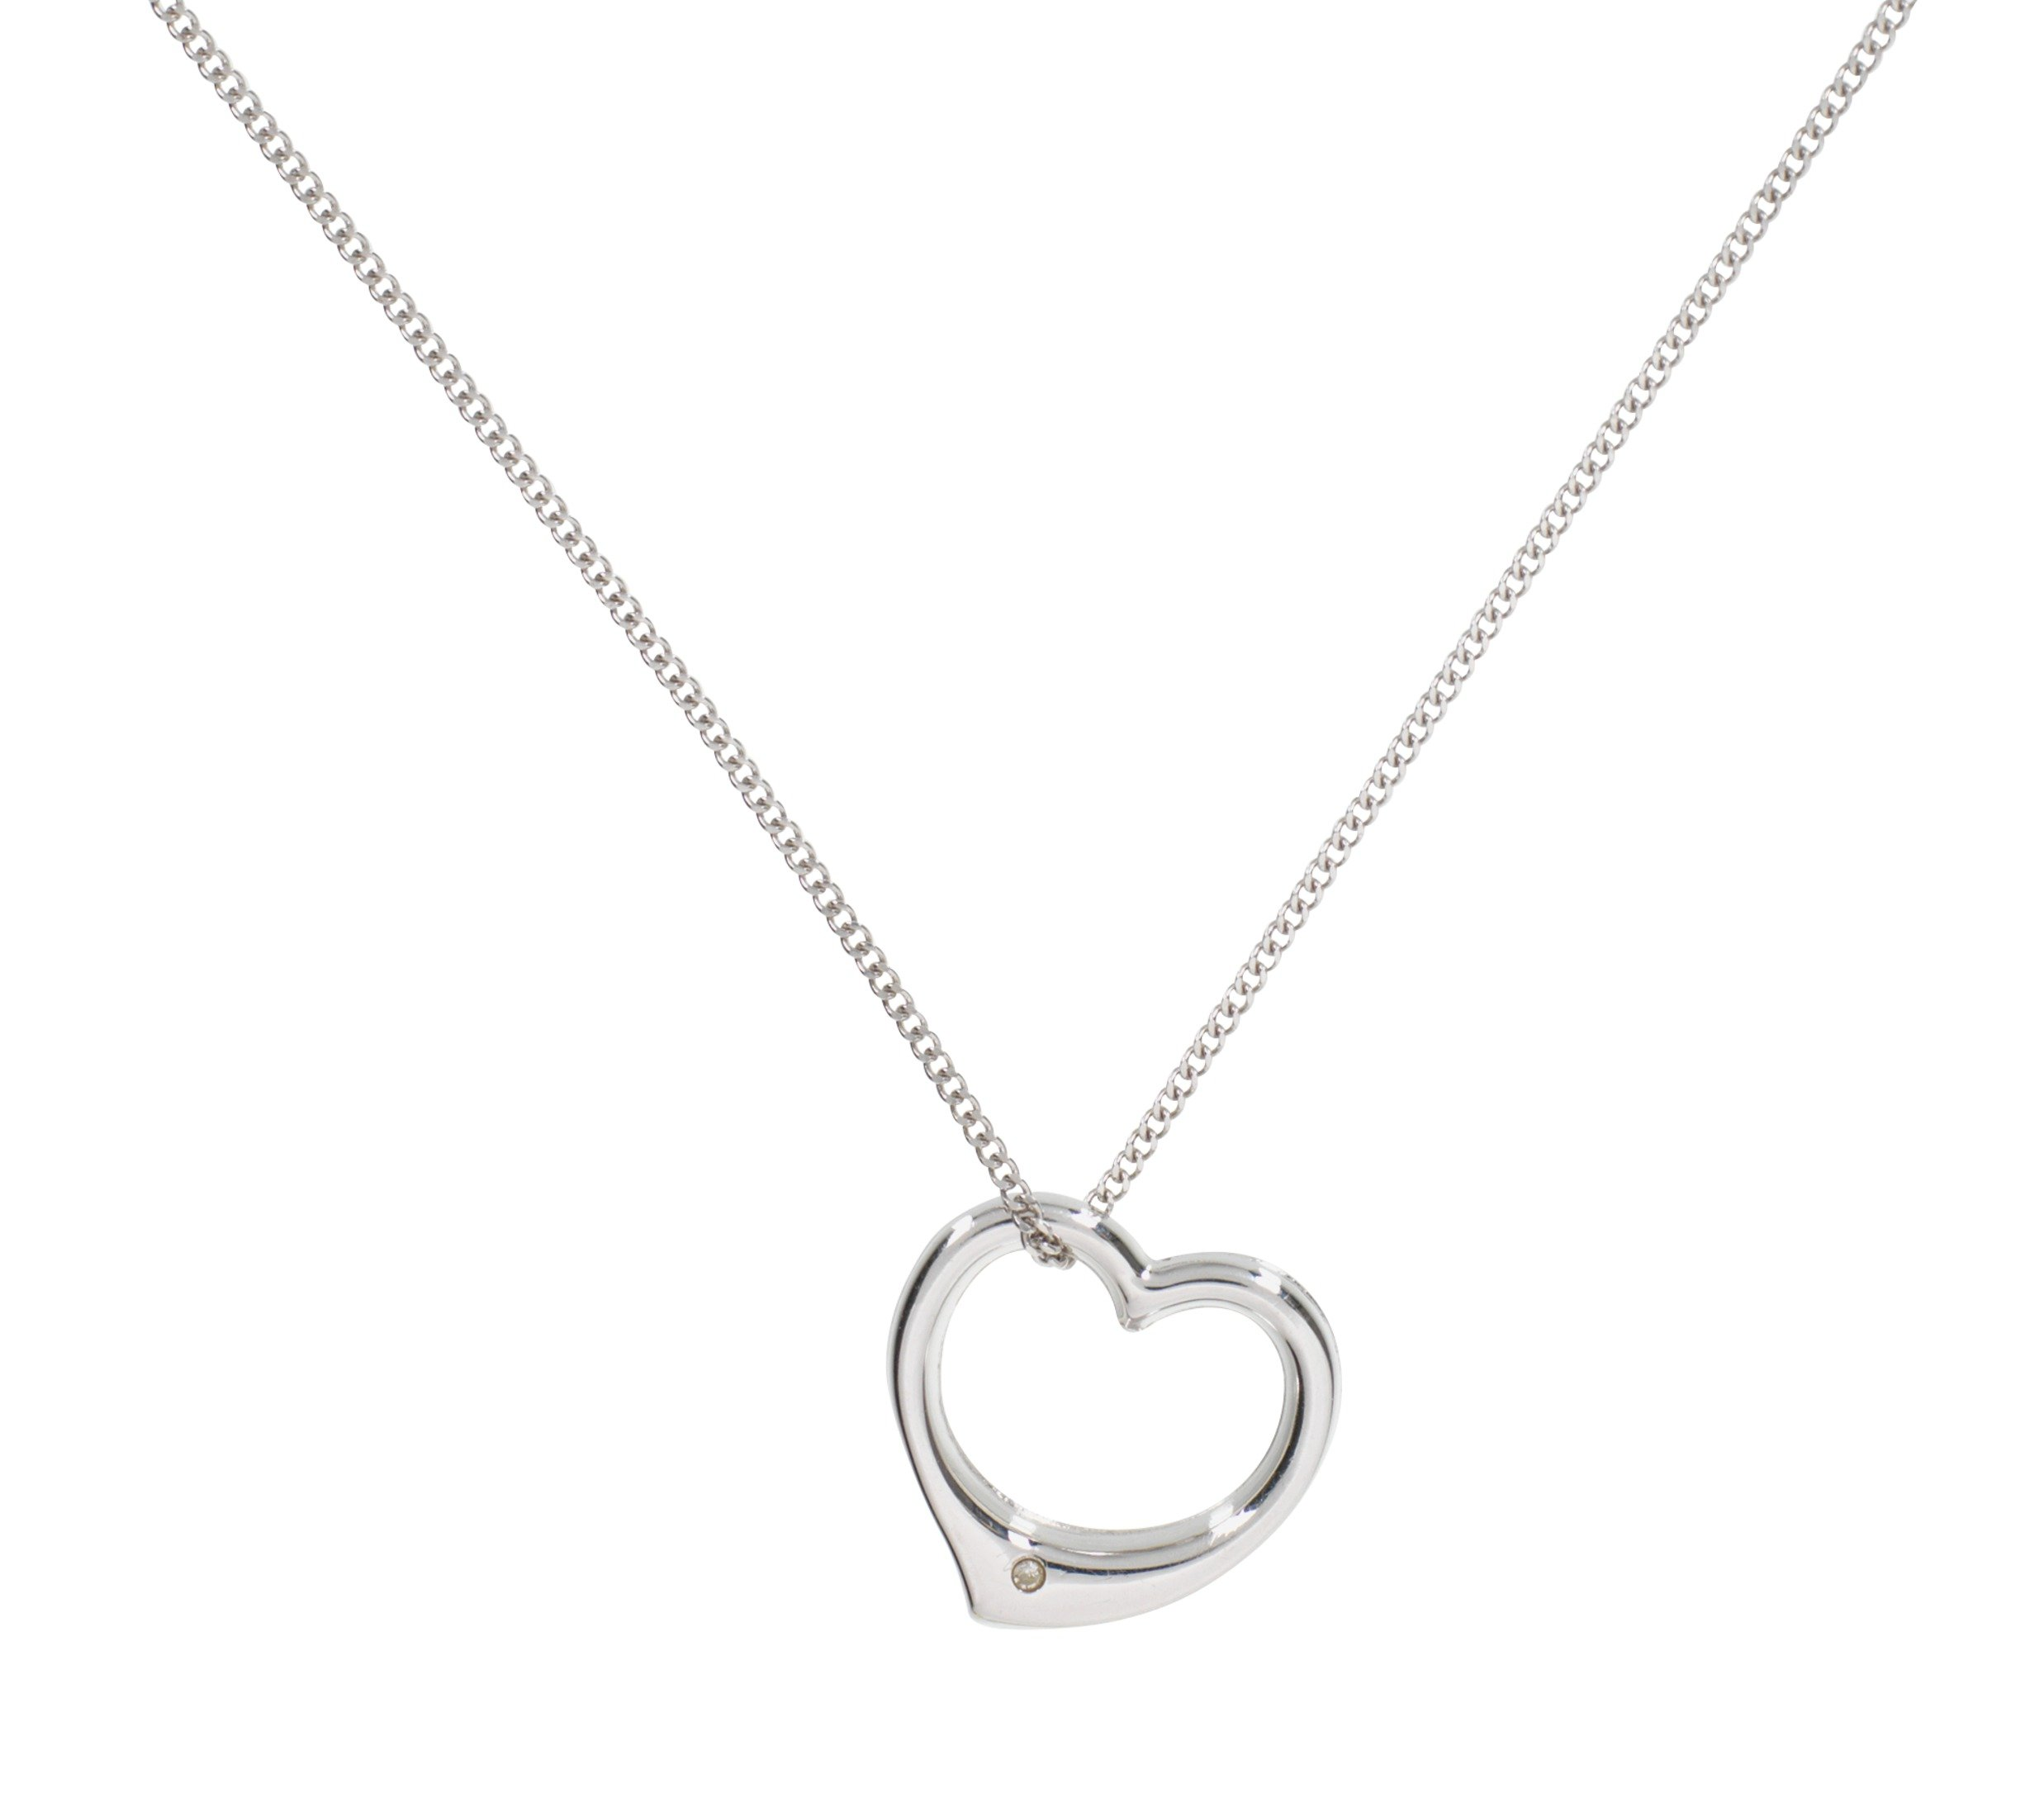 Revere Sterling Silver Diamond Accent Floating Heart Pendant